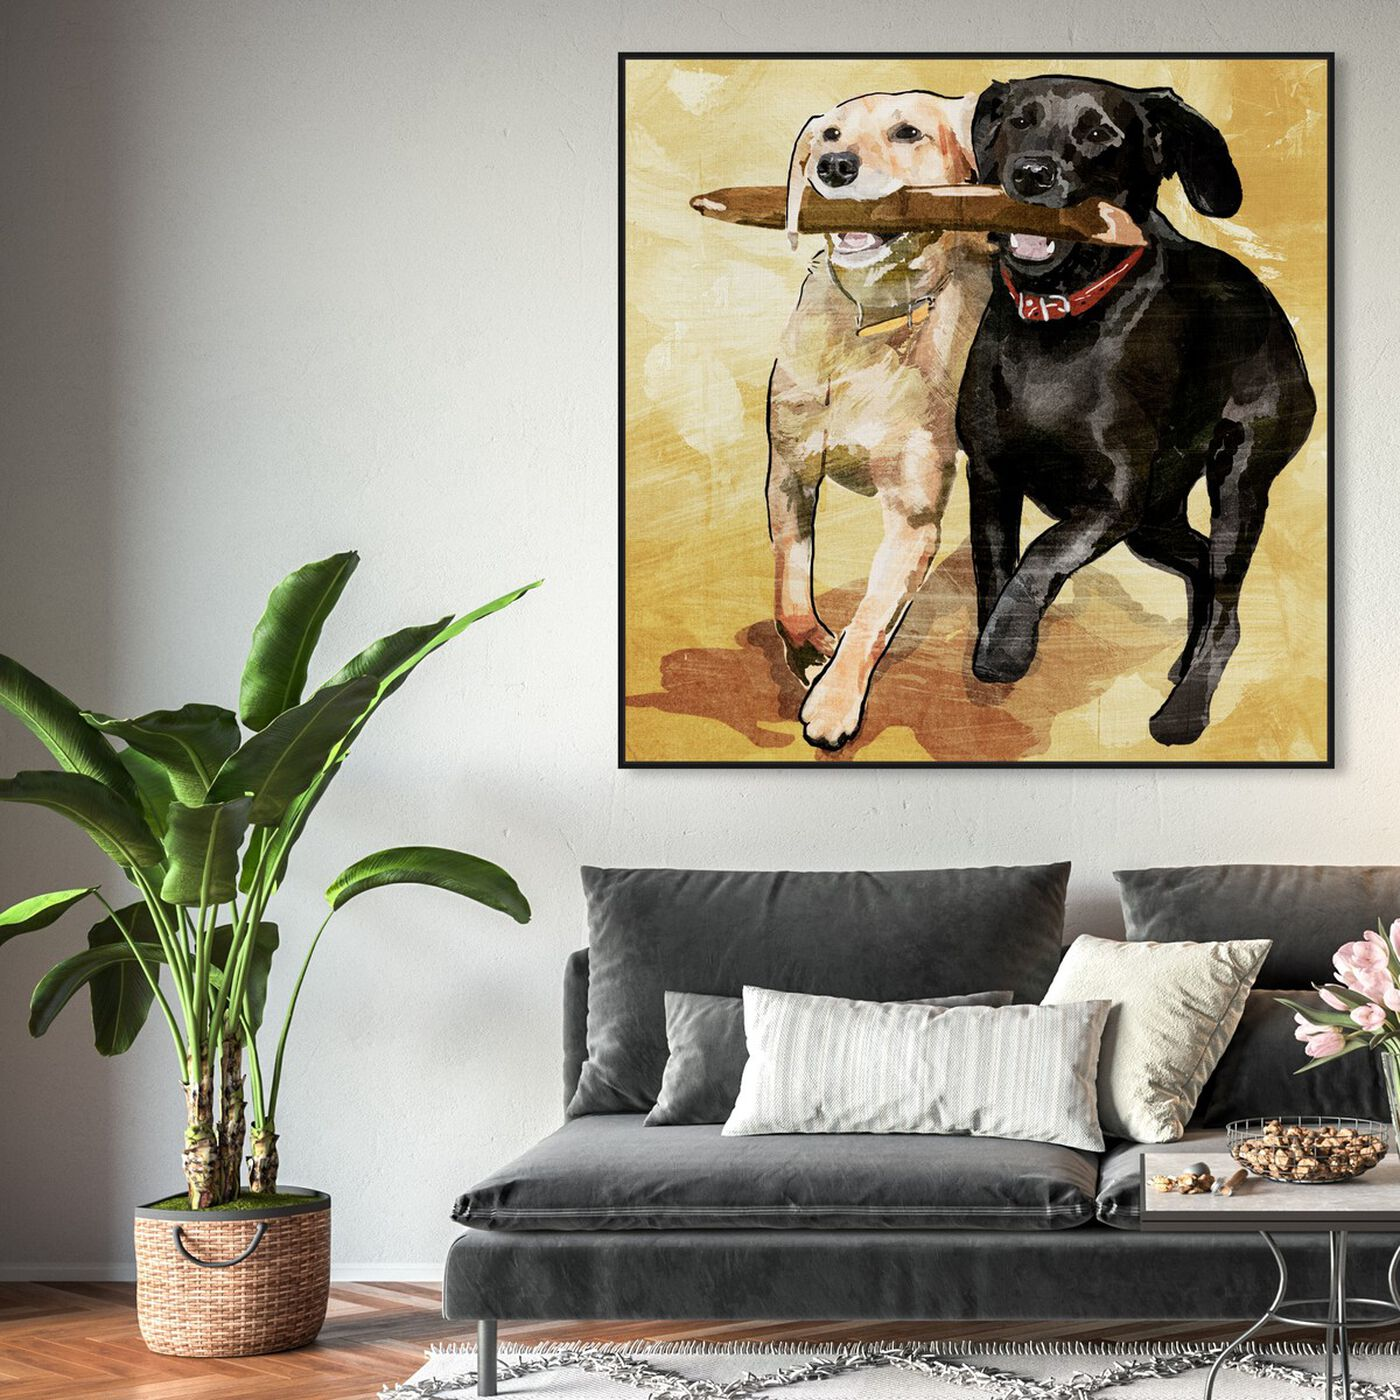 Hanging view of Playtime featuring animals and dogs and puppies art.